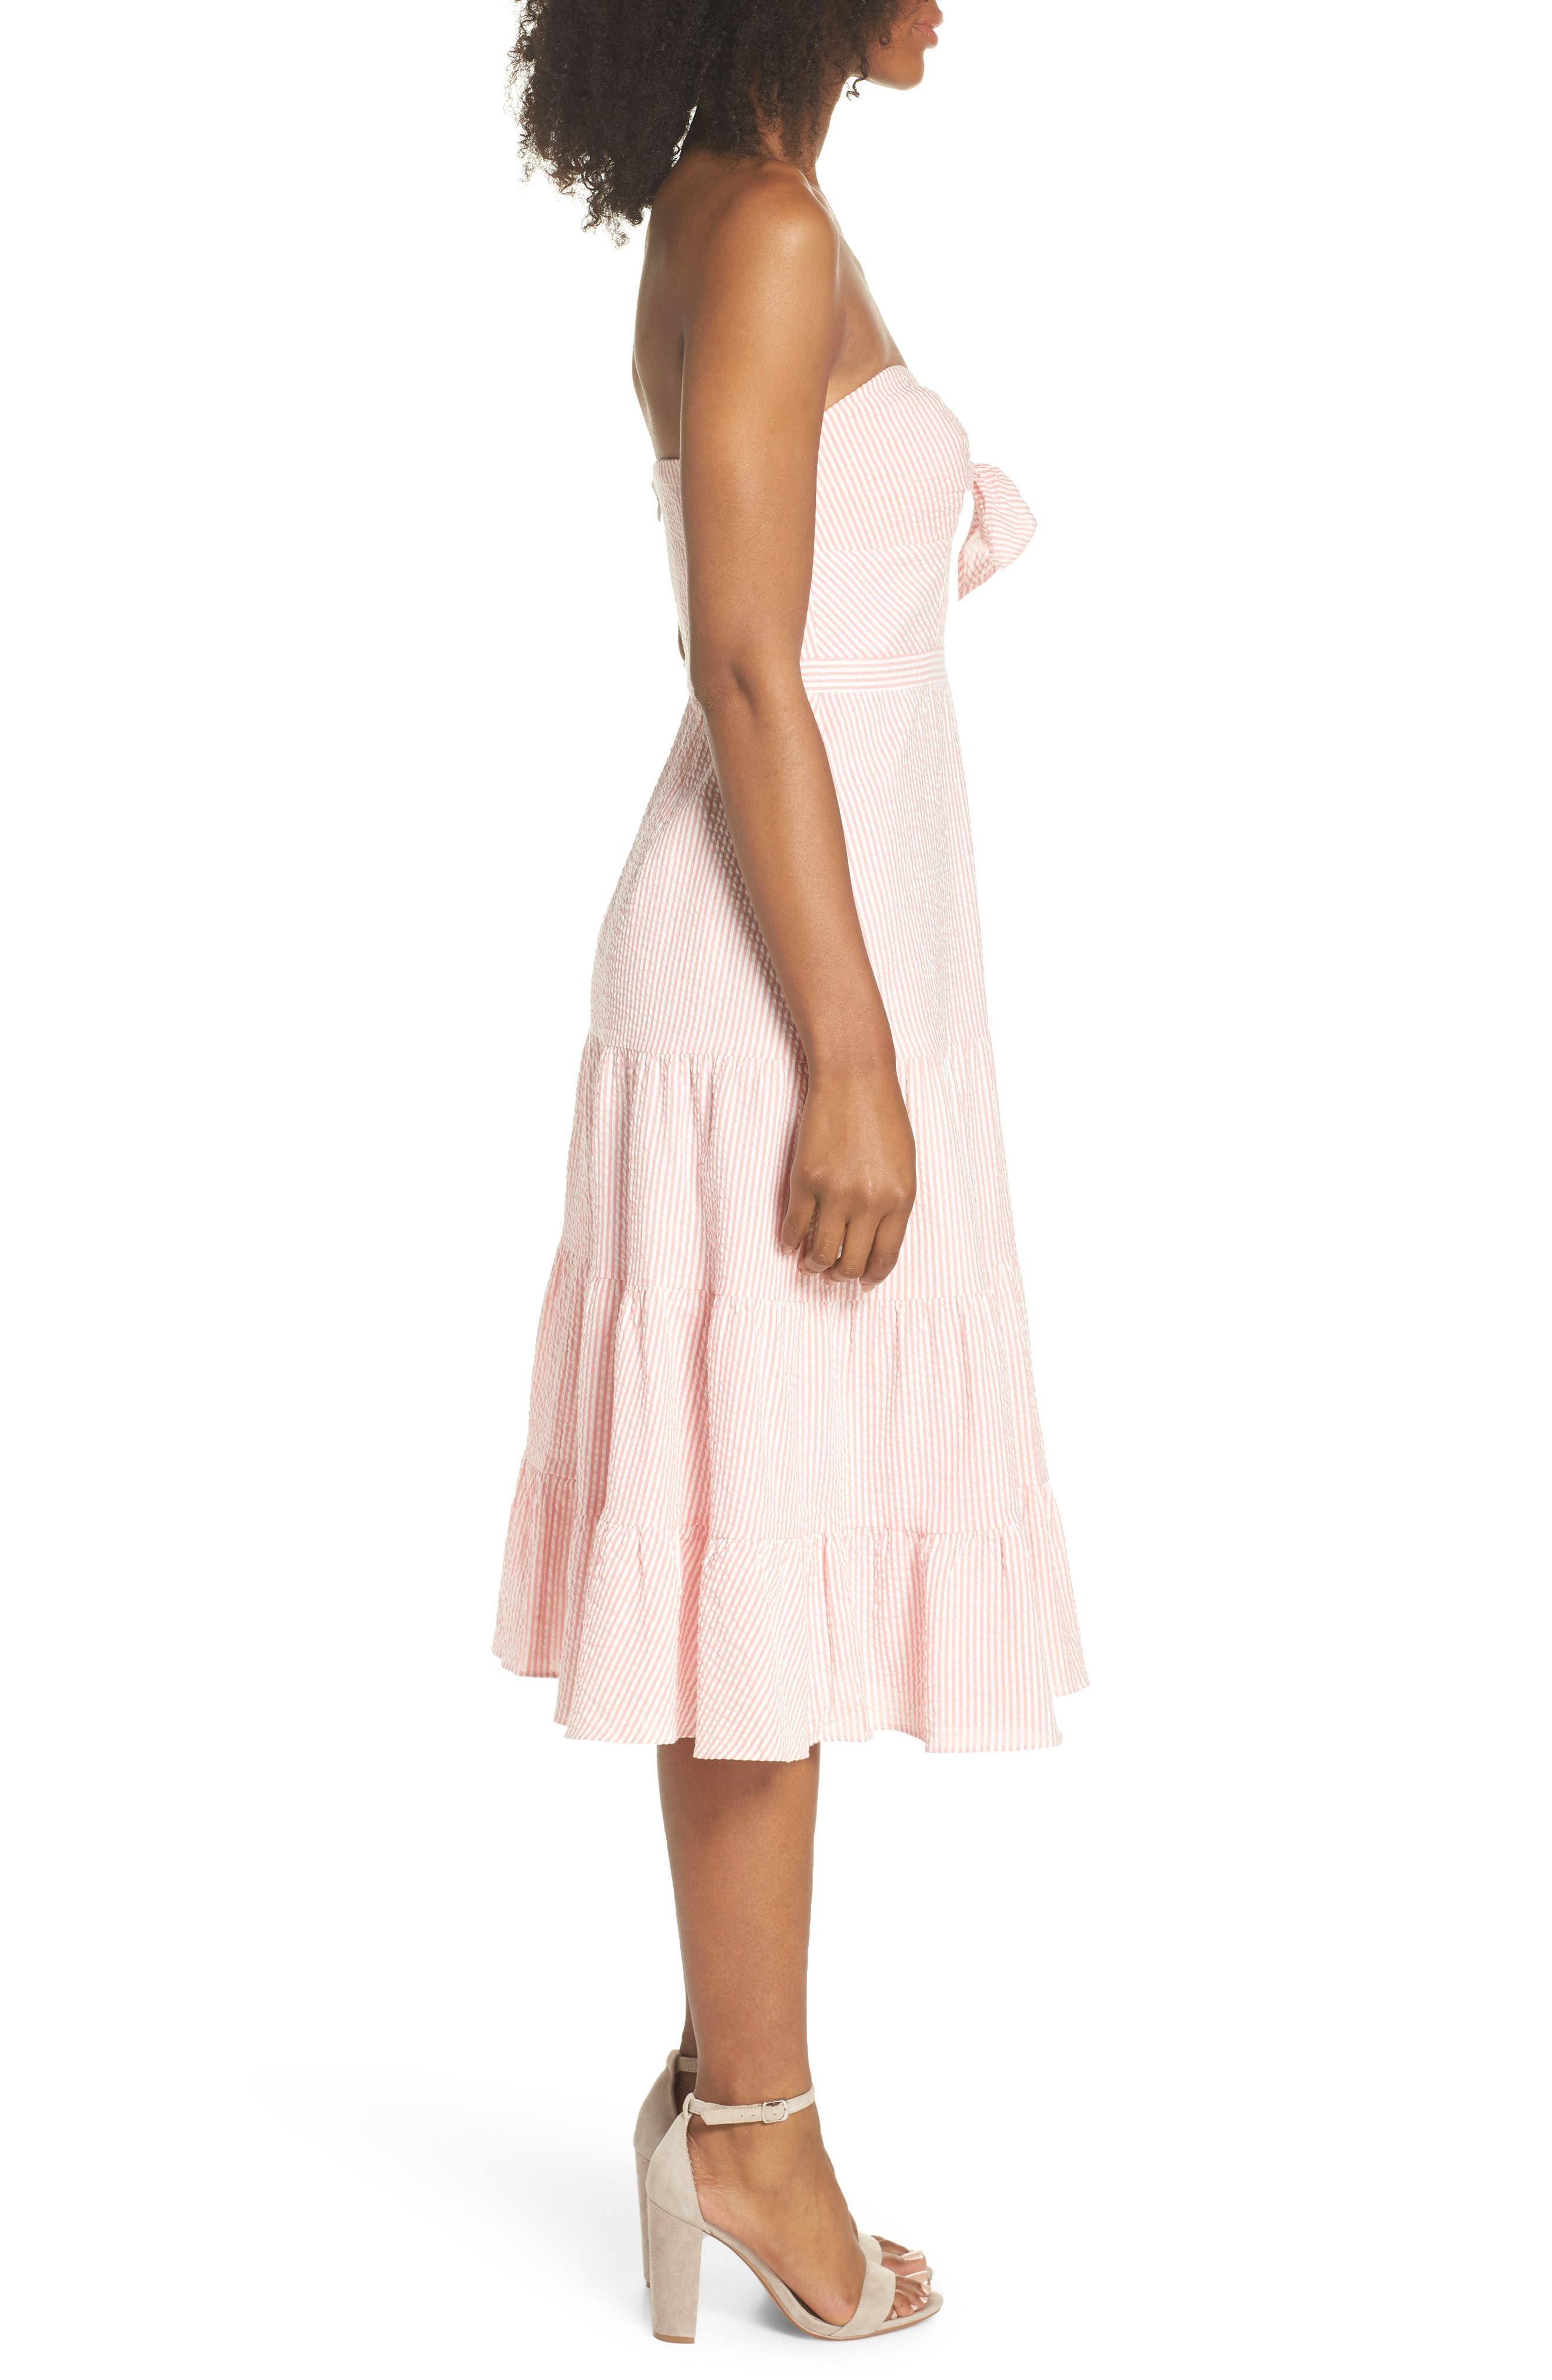 J.Crew Tie Front Strapless Dress,                             Alternate thumbnail 3, color,                             Bright Coral